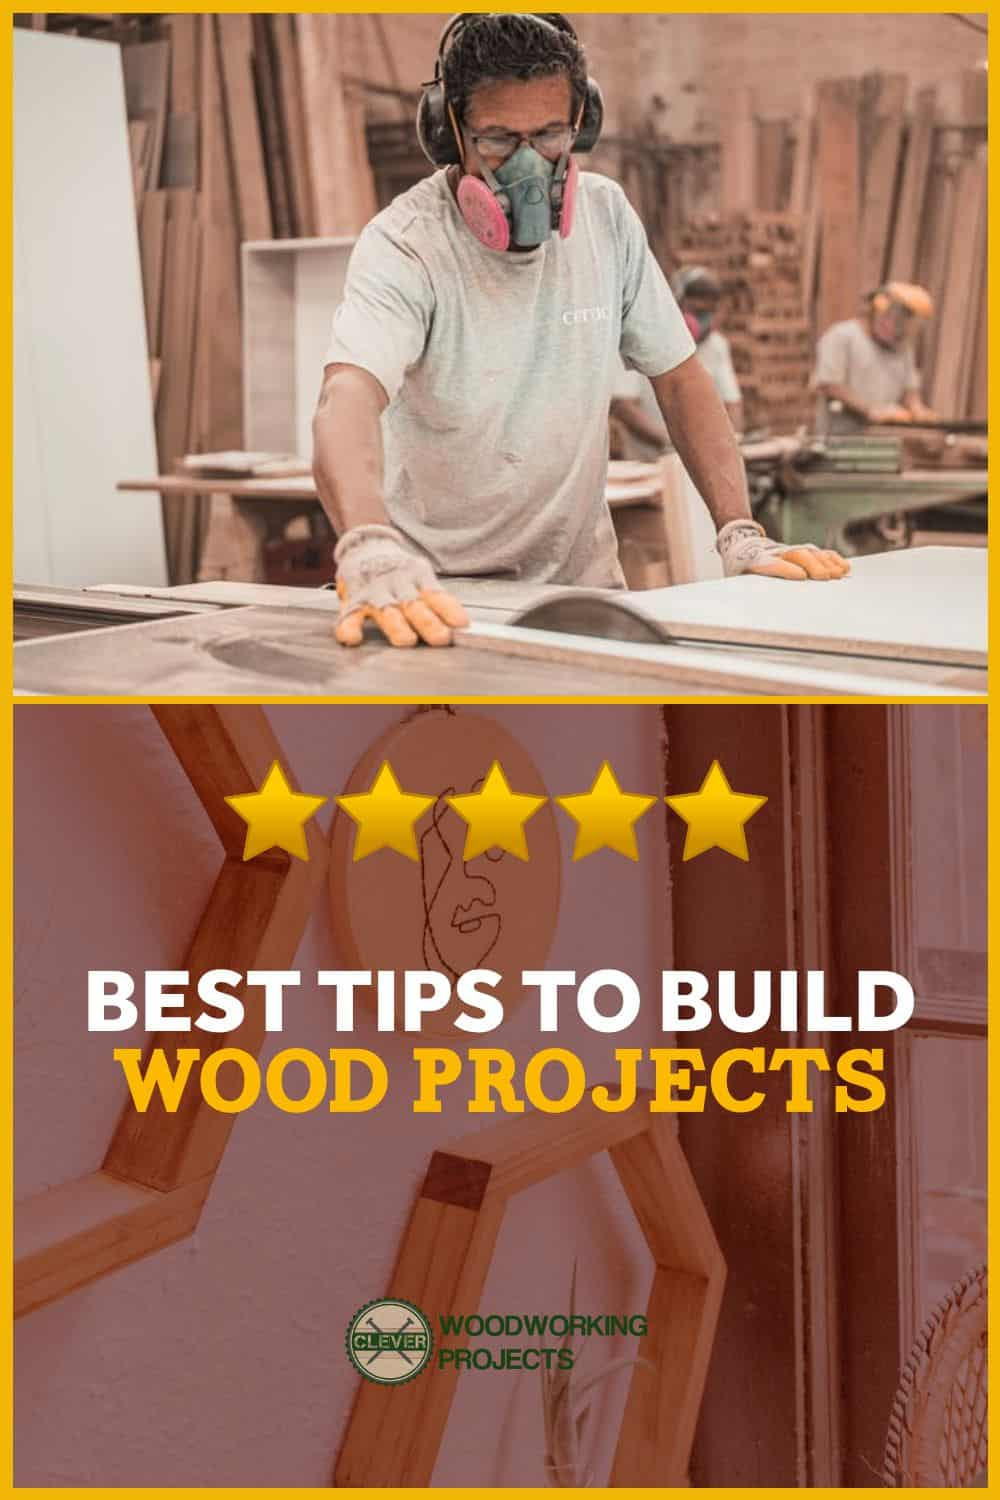 Best Tips For Building Easy Woodworking Projects from Scratch